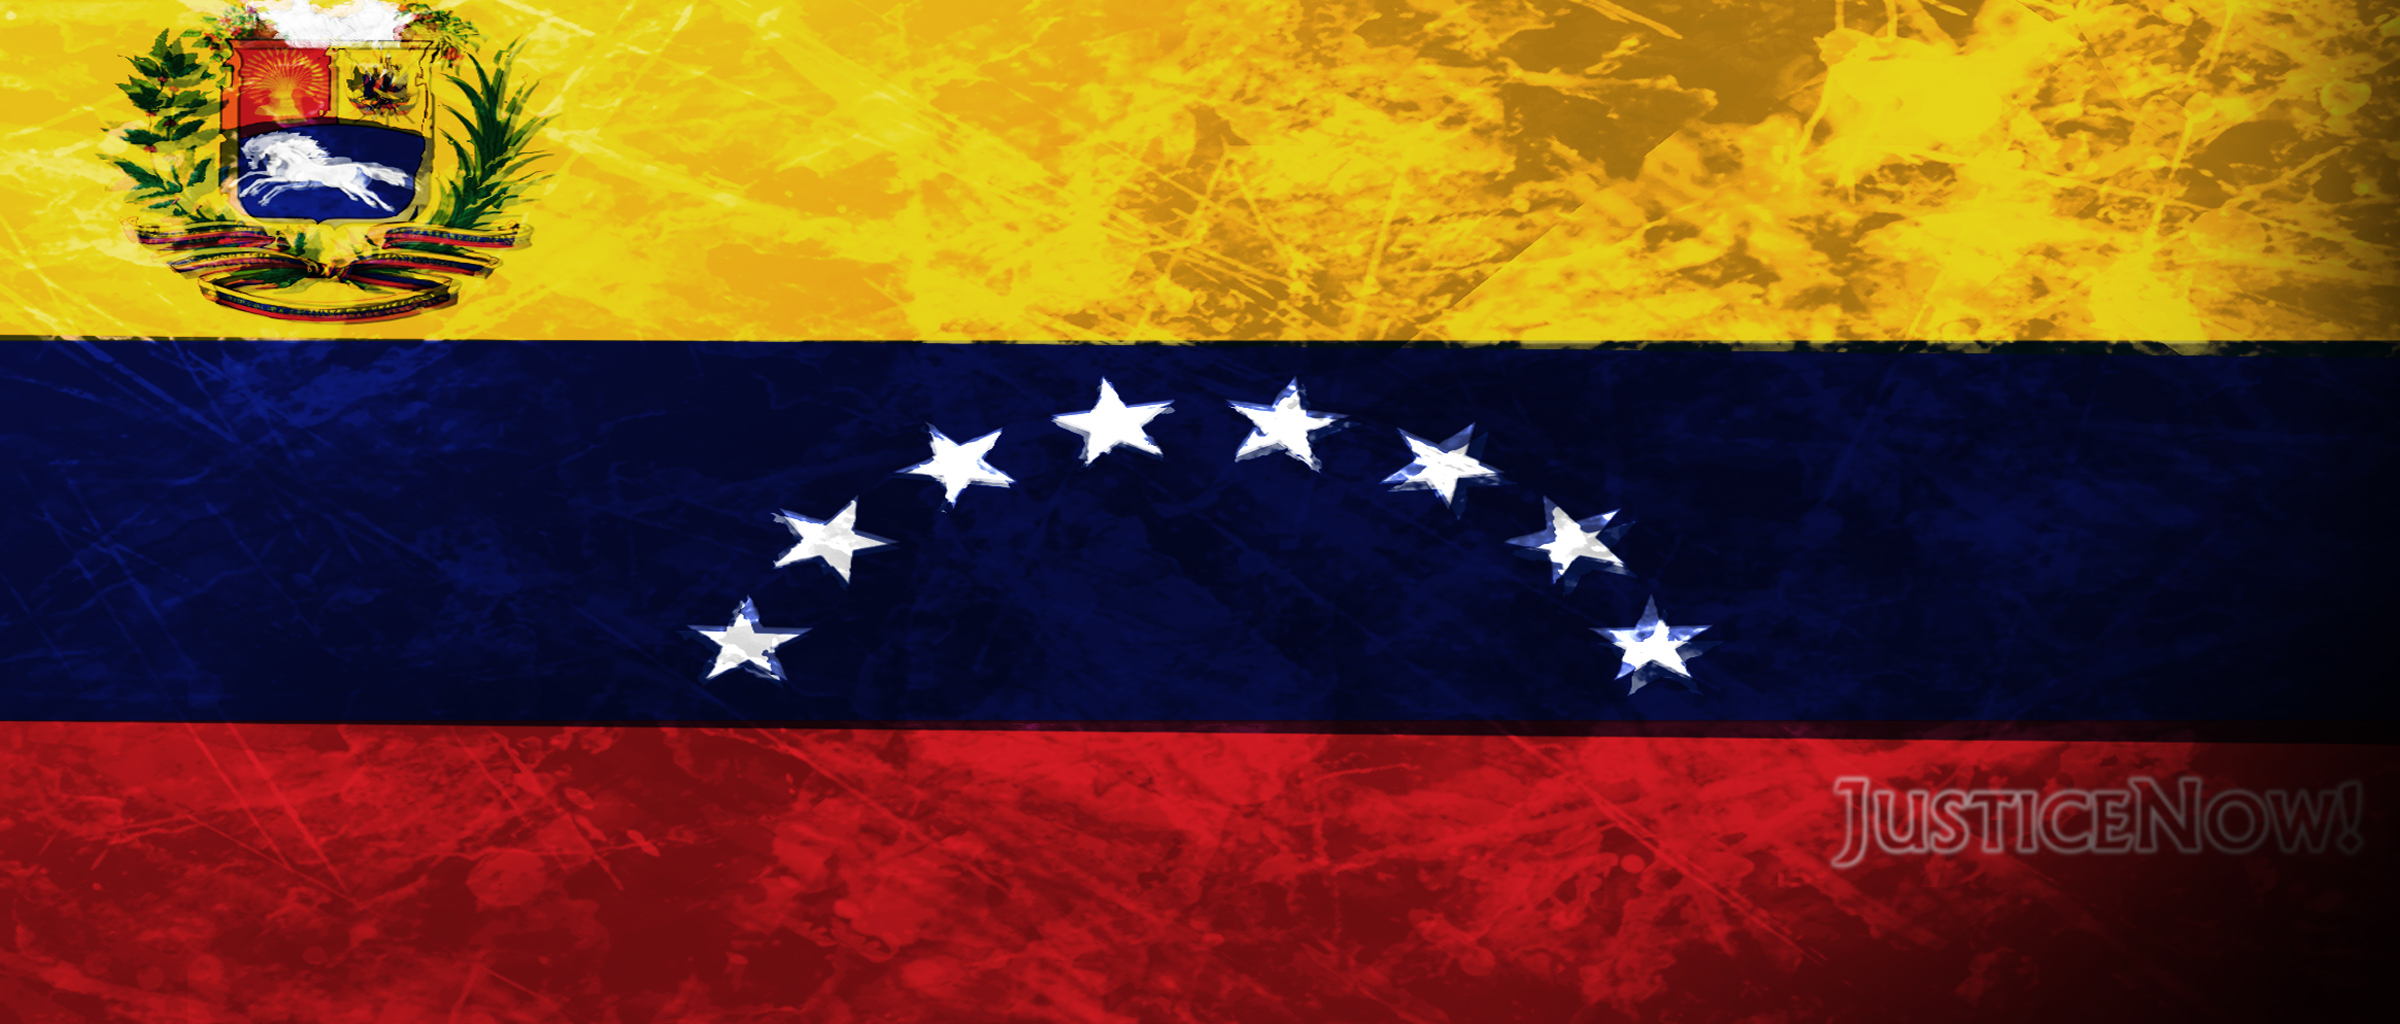 Chomsky, Pilger und 70 weitere fordern in offenem Brief ein Ende der US-Intervention in Venezuela <br>  <span id='sec-title'>Kein Regime Change in Caracas</span>